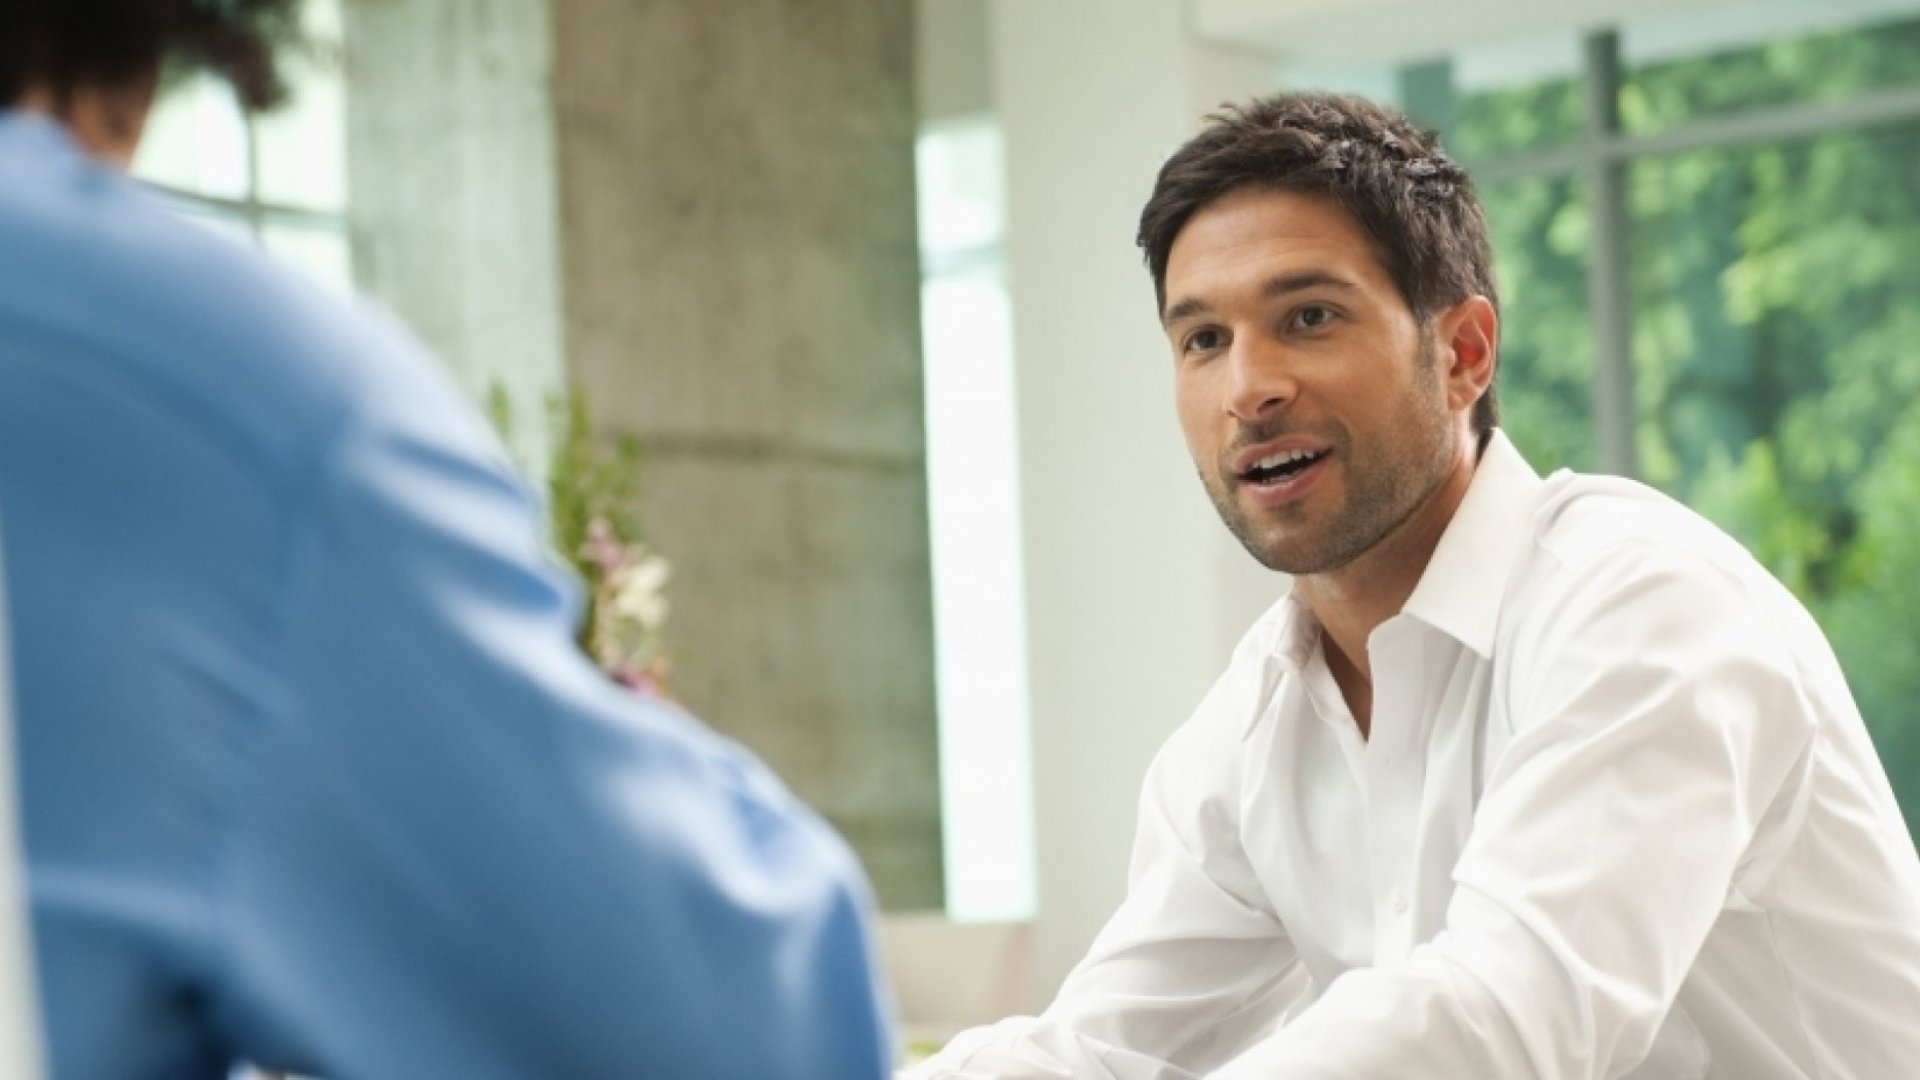 5 Ways Smart Sales Leaders Successfully Conduct Accountability Conversations With Their Sales Reps